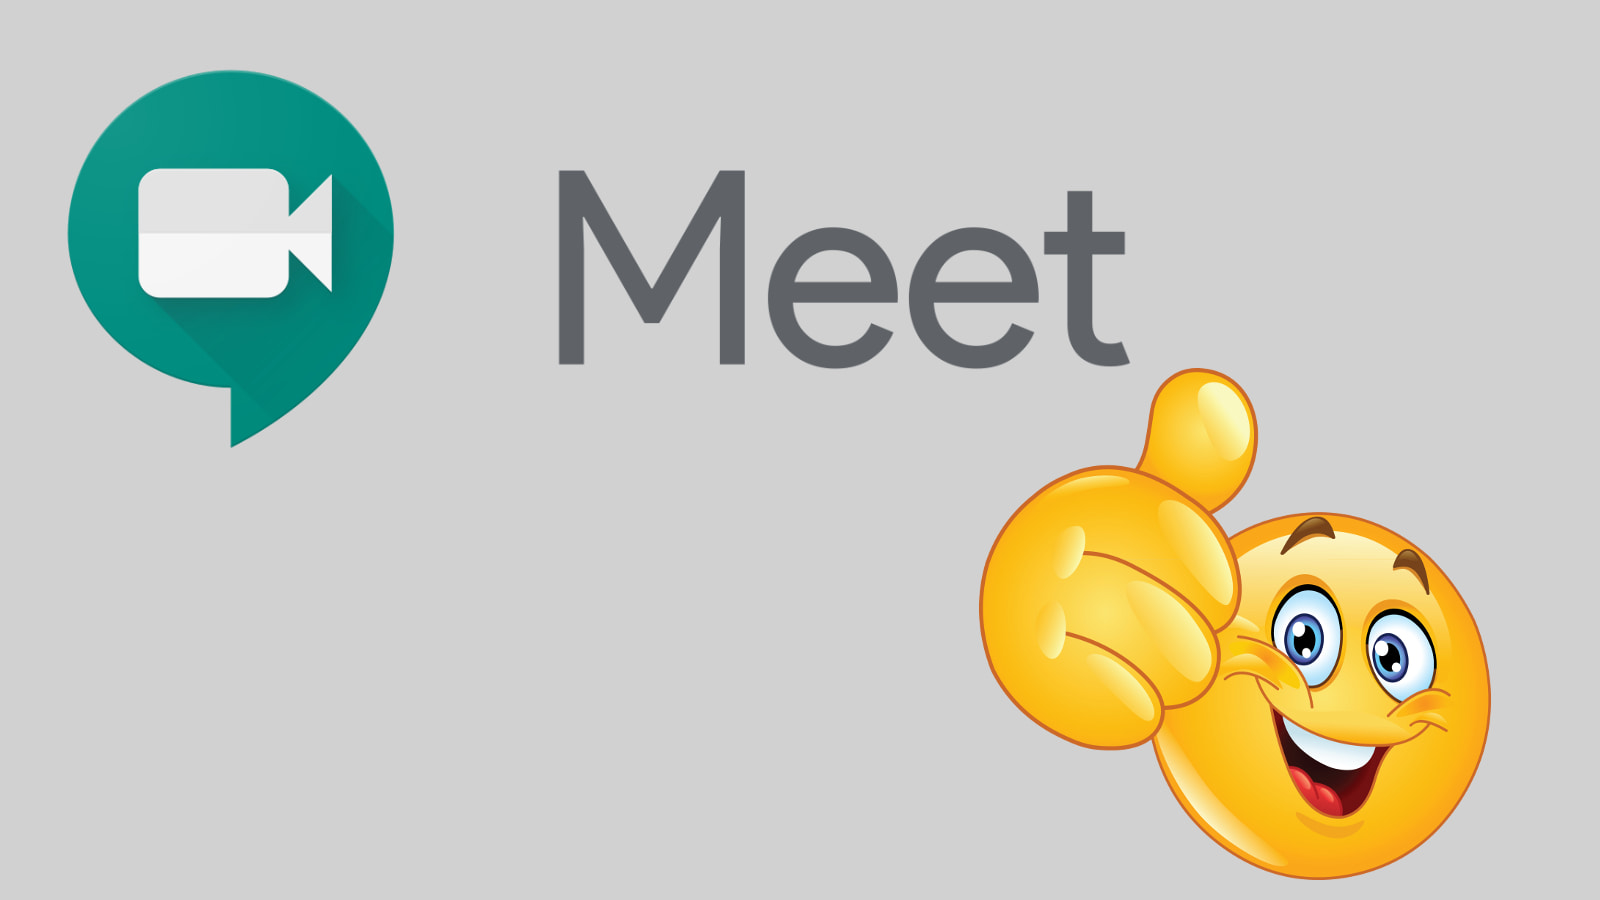 3 Google Meet add-ons for attendance, hand-raising and push-to-talk